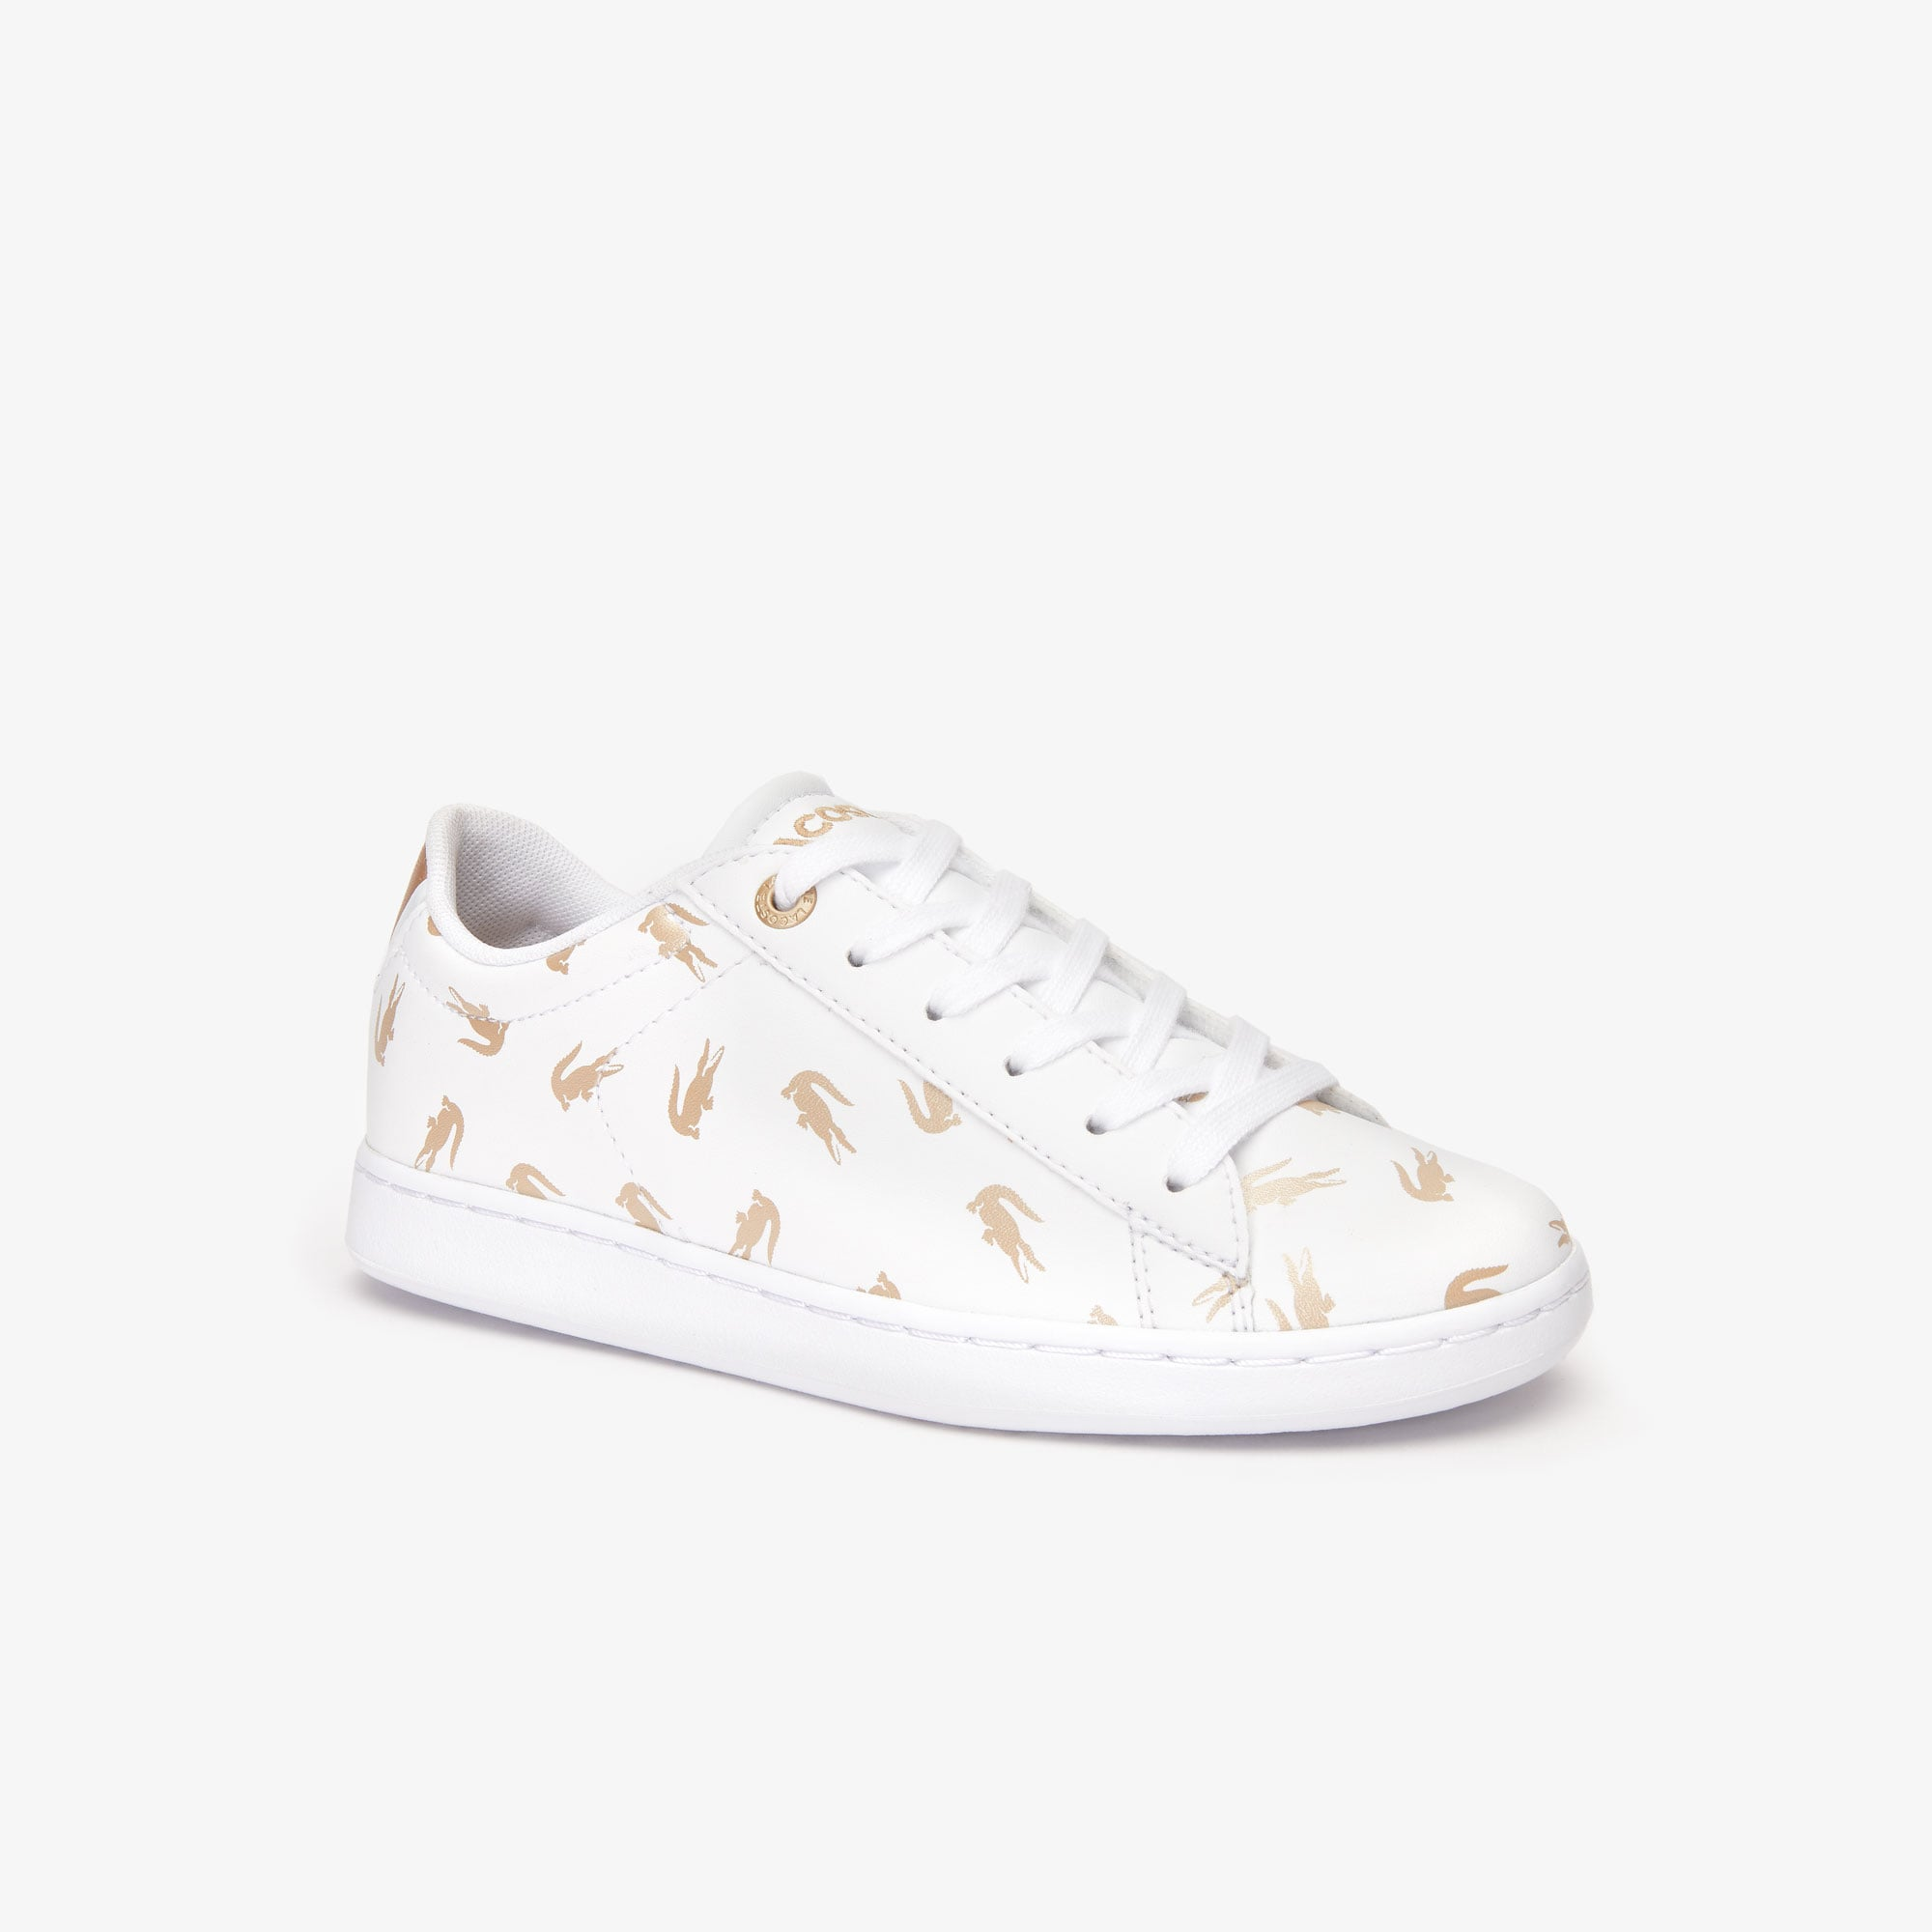 라코스테 칠드런 스니커즈 Lacoste Childrens Carnaby Metallic Crocodile Sneaker